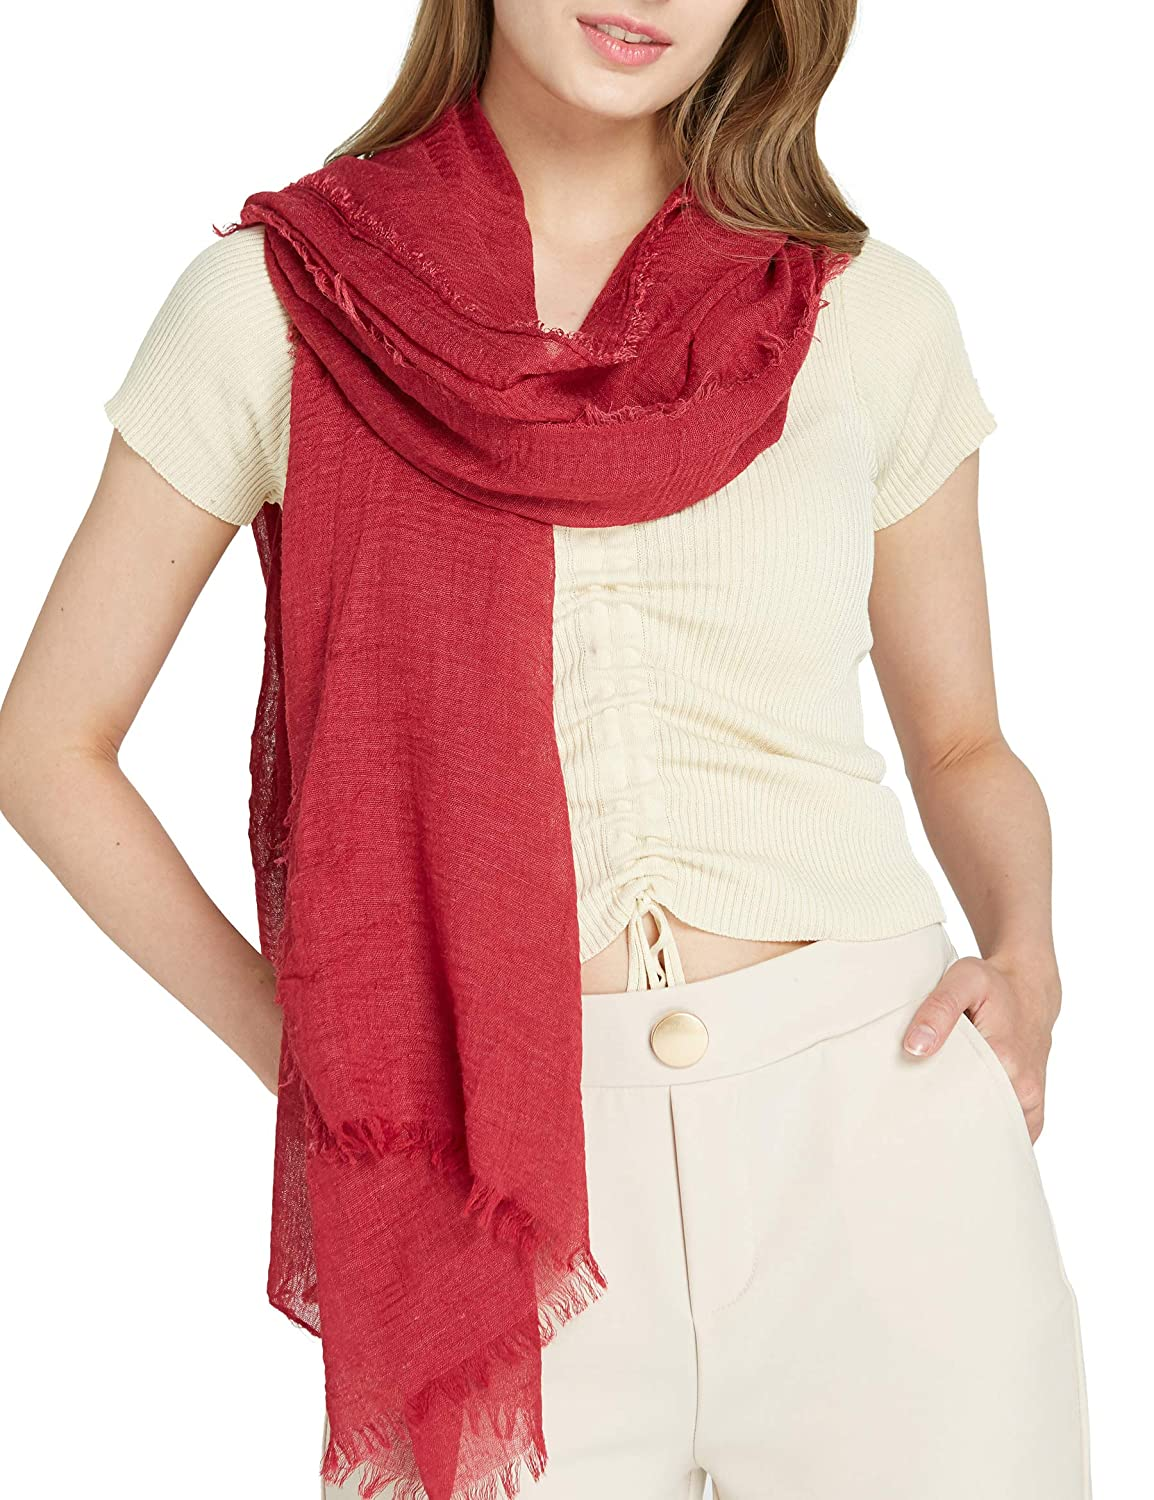 Long Plain Scarf Large Wrap for Women - Big Solid Crashed Wrinkle Soft Hair Scarf and Shawl 0820001